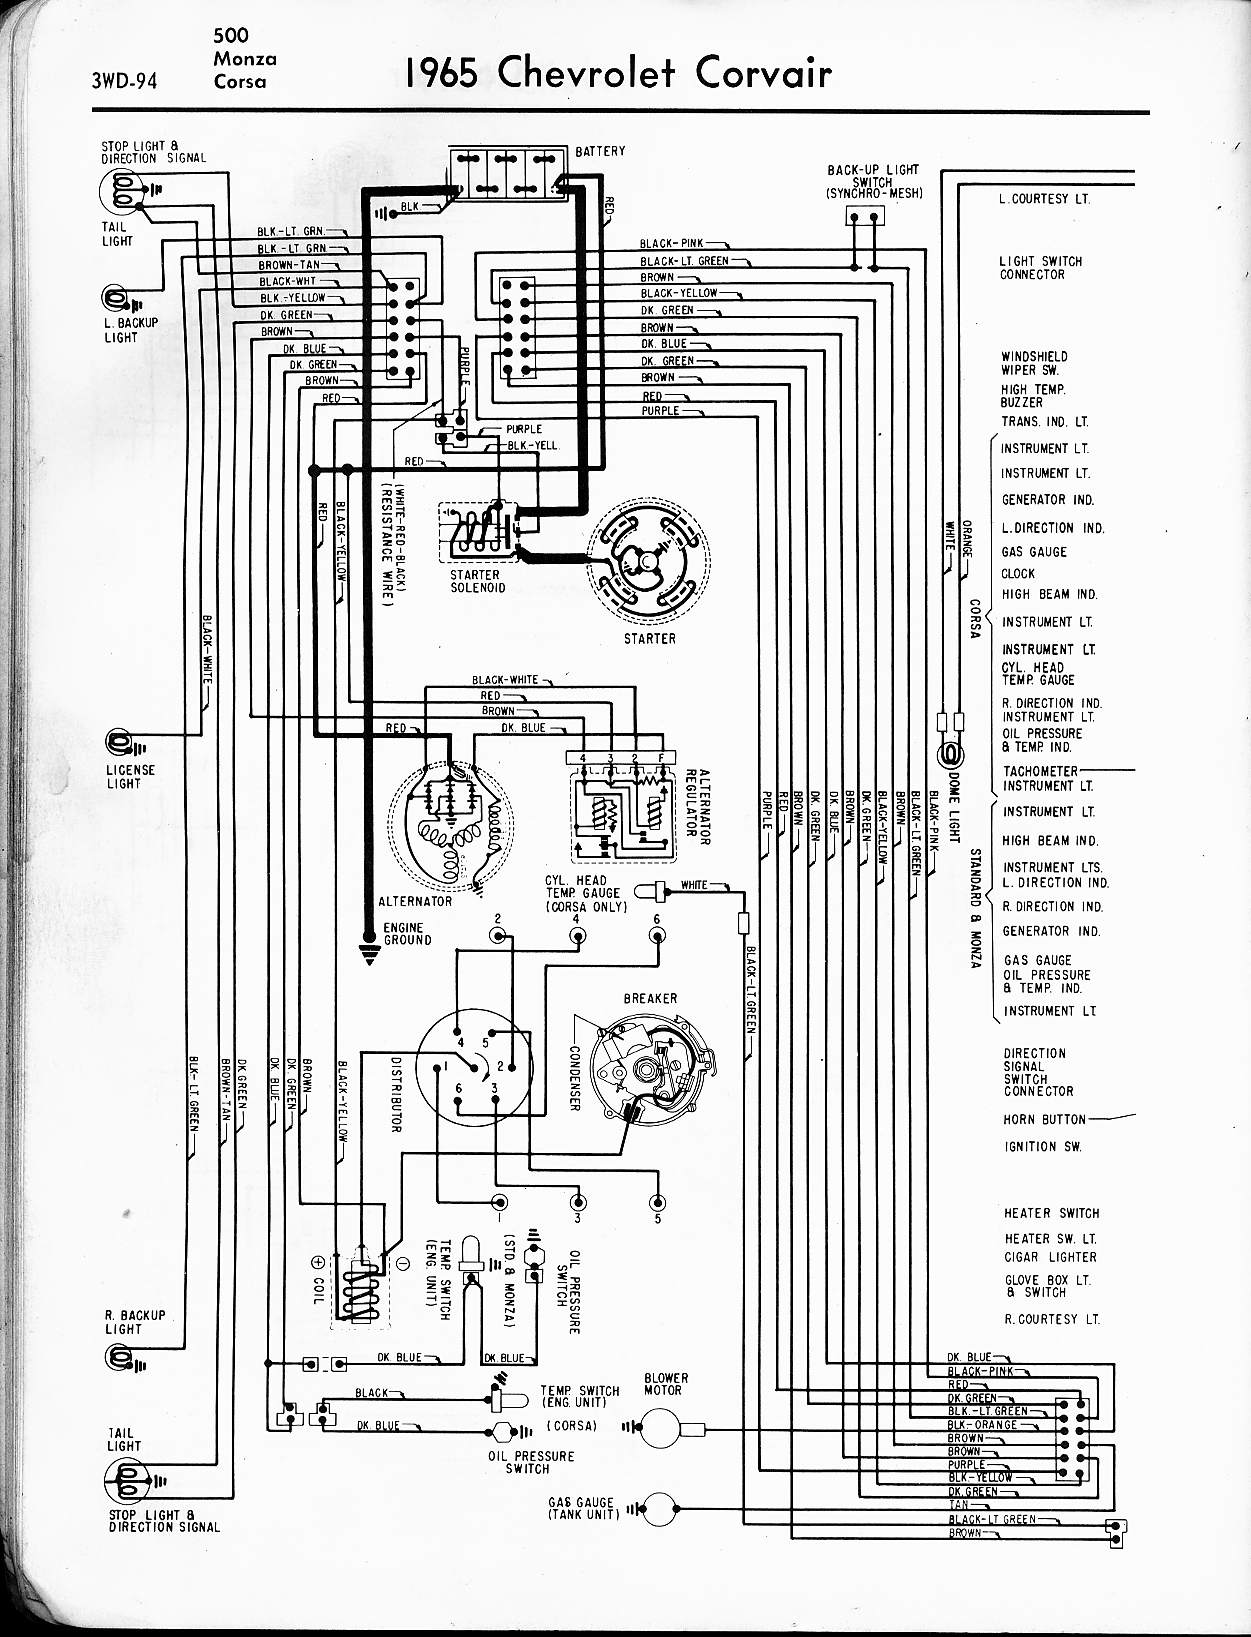 1962 impala voltage regulator wiring diagram   44 wiring